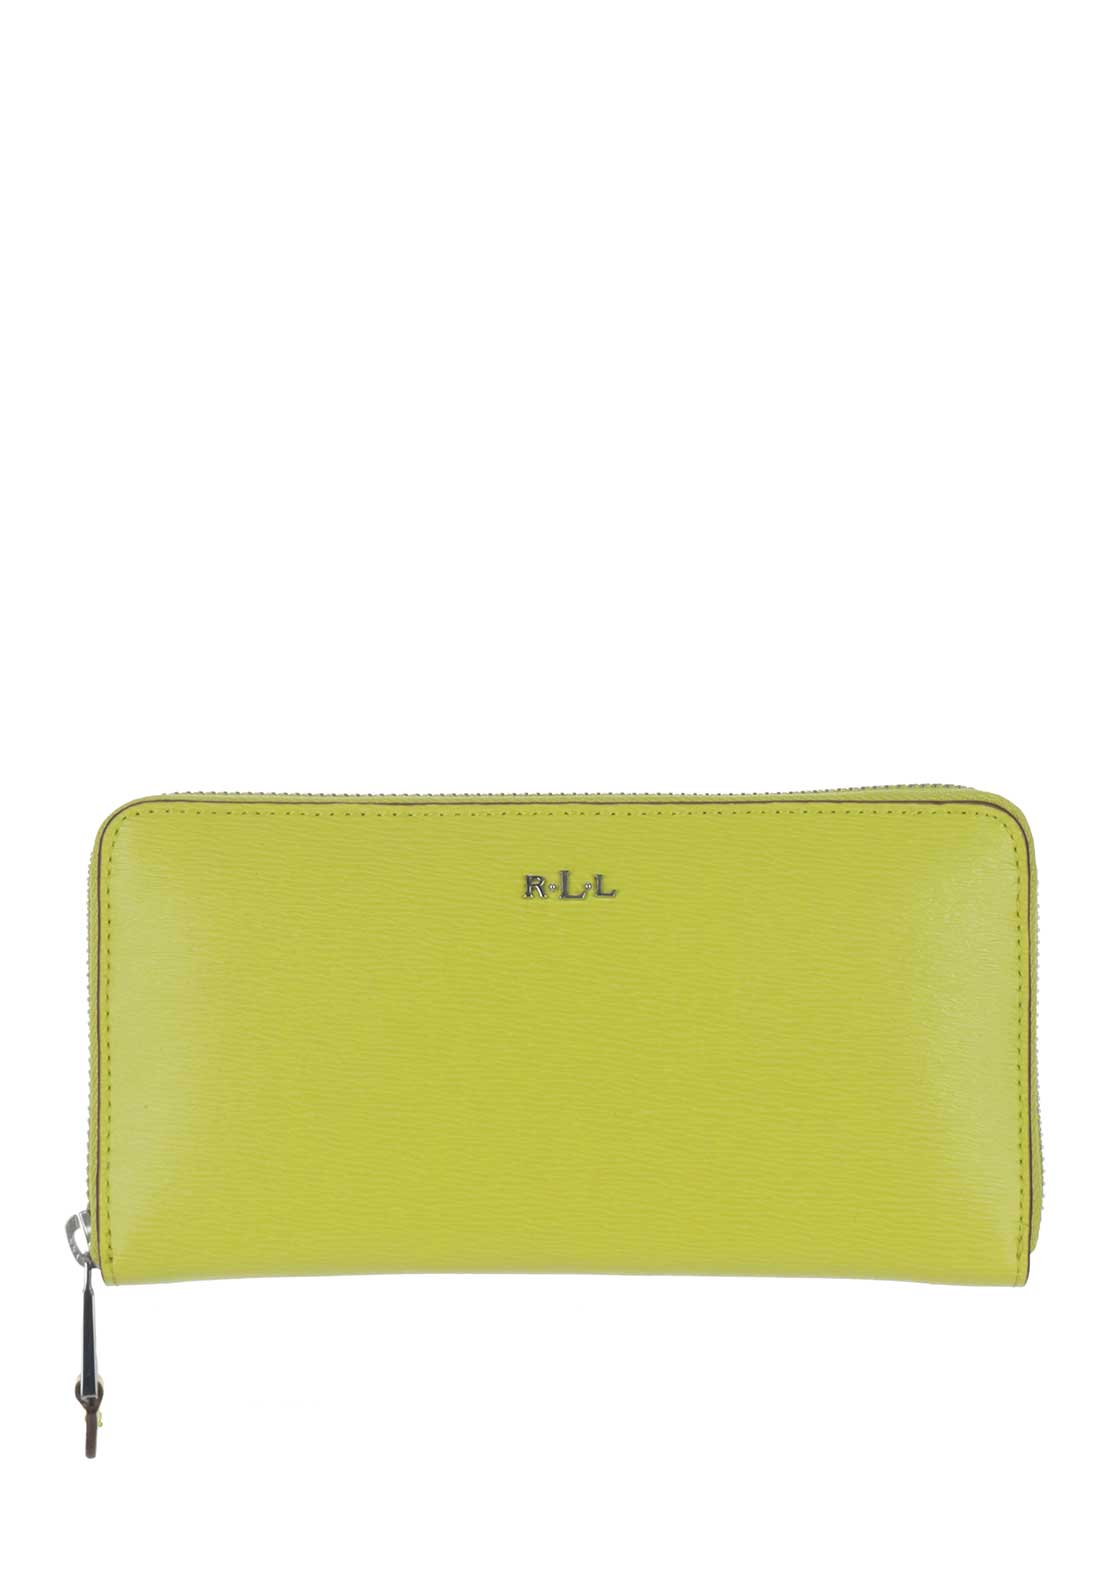 Ralph Lauren Zip Around Large Purse, Citron Lime Green